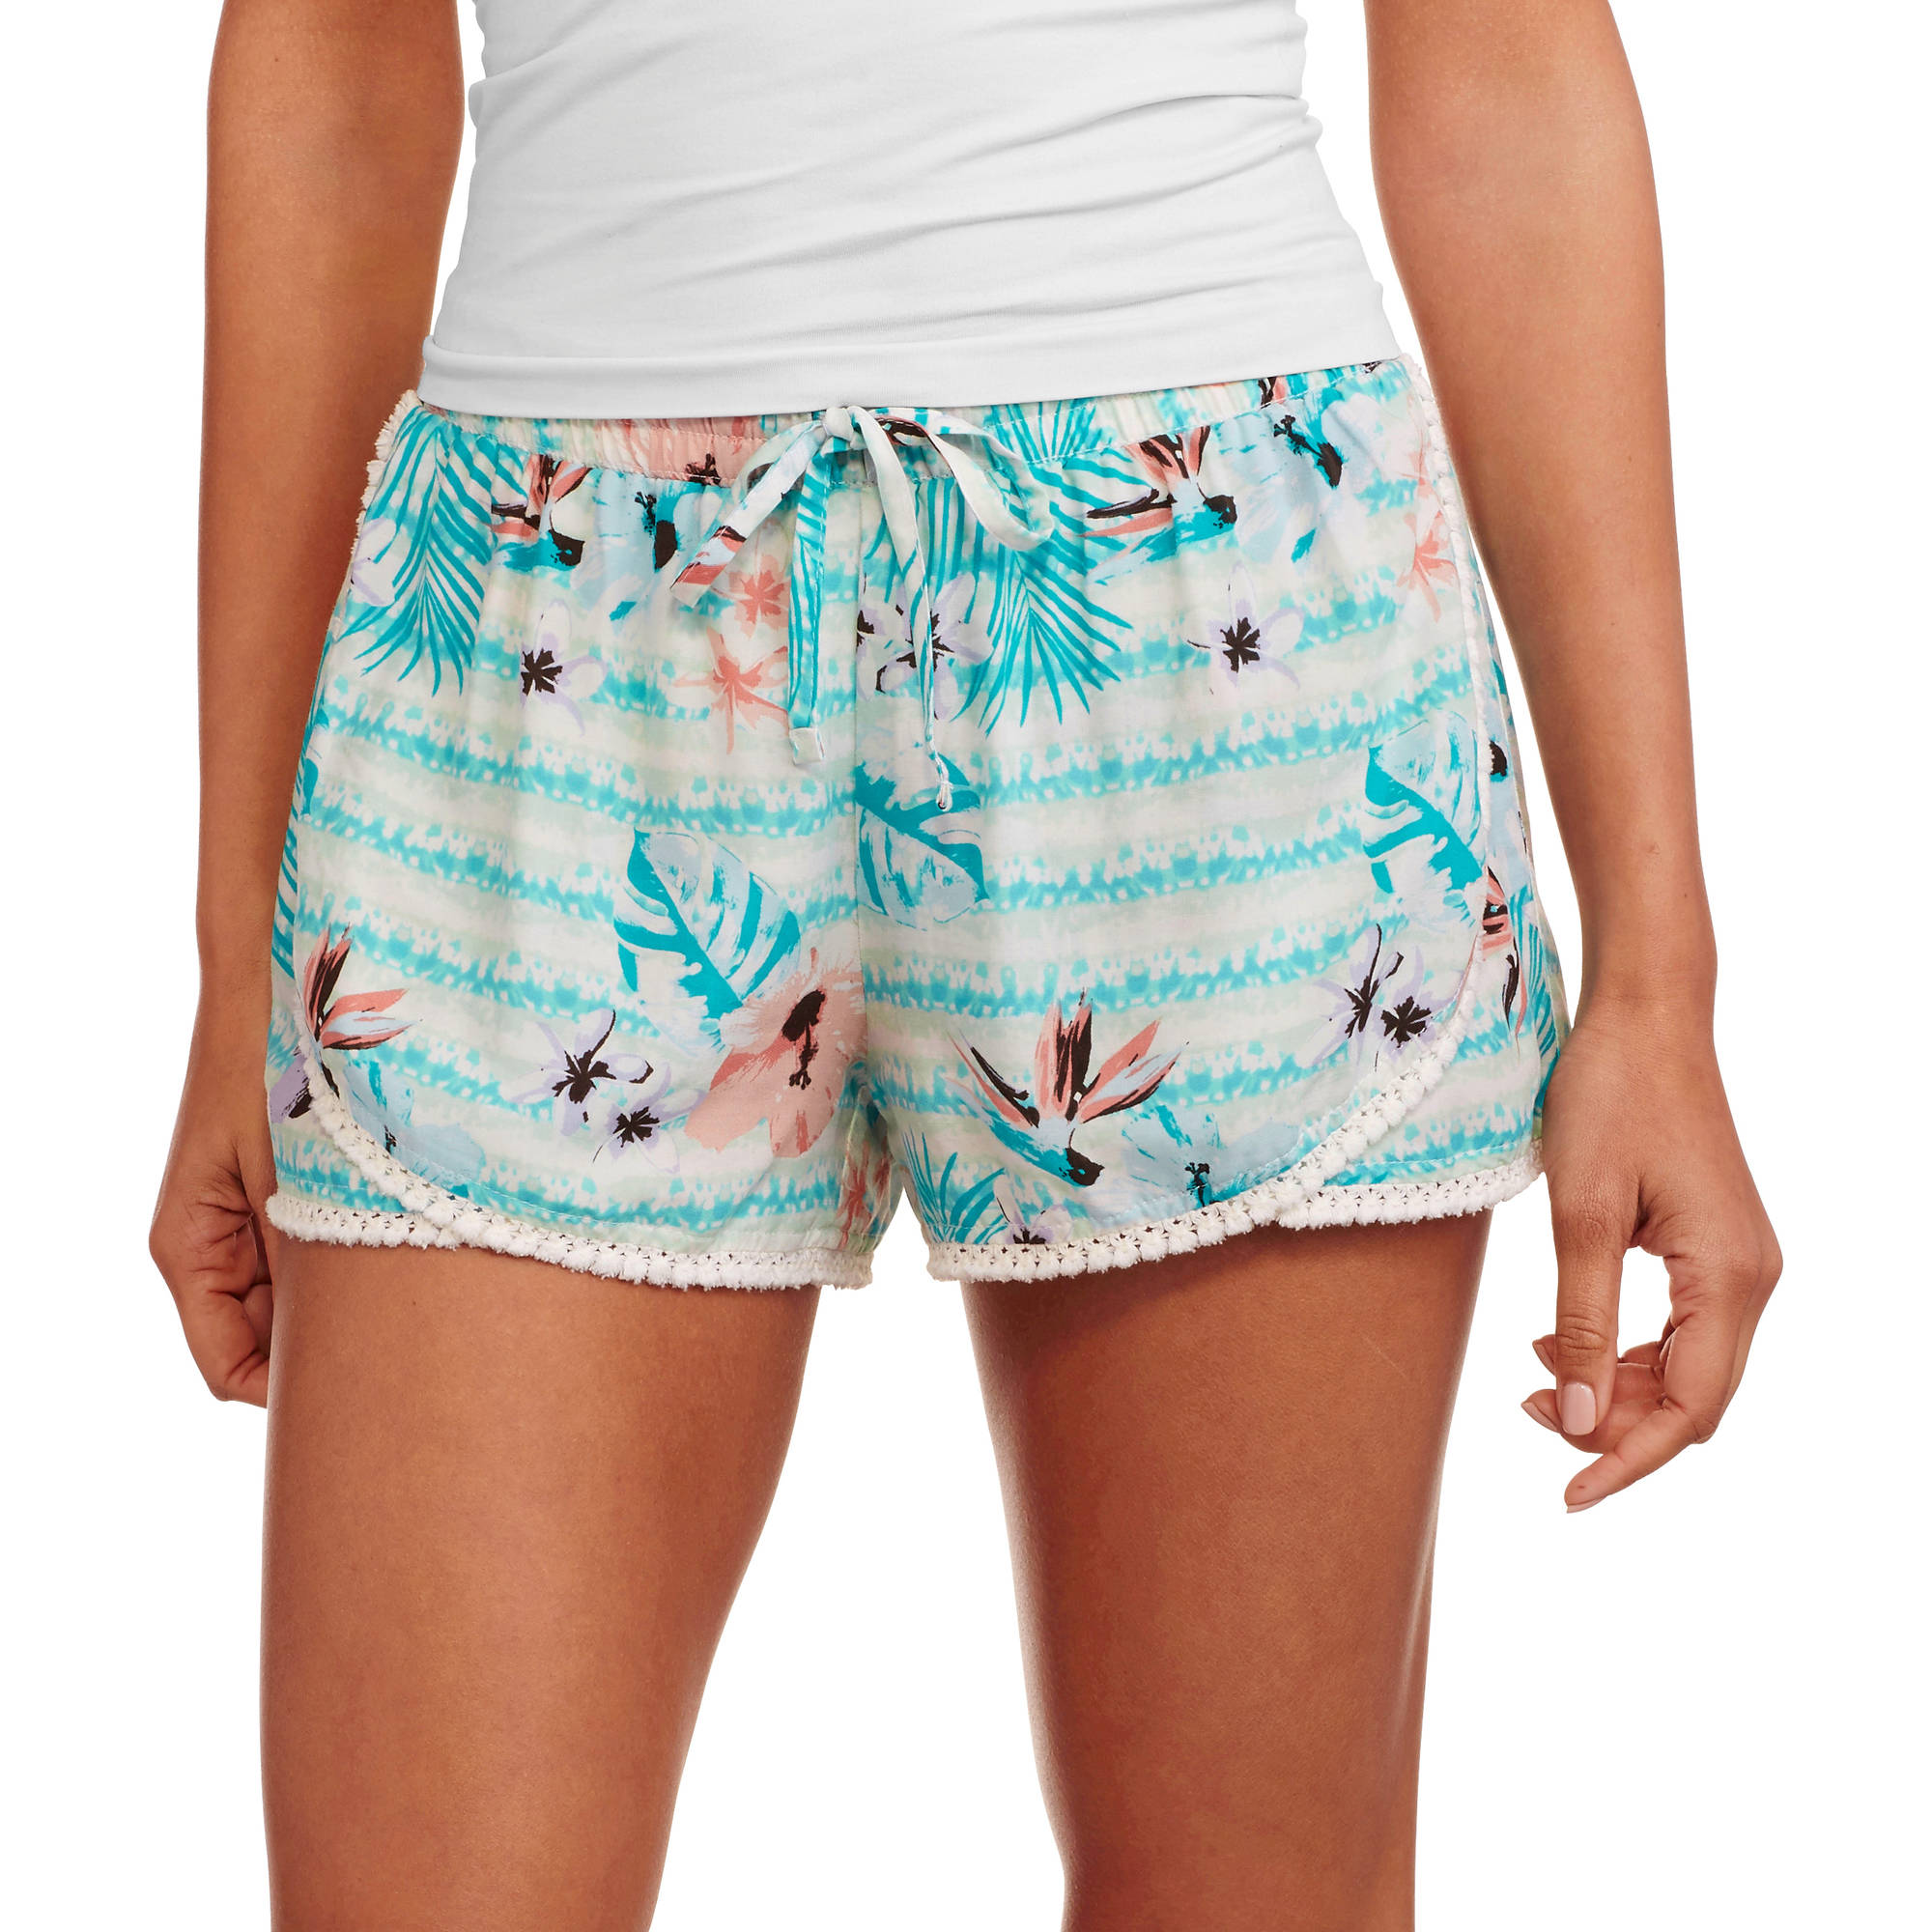 No Boundaries Juniors Printed Challis Soft Shorts